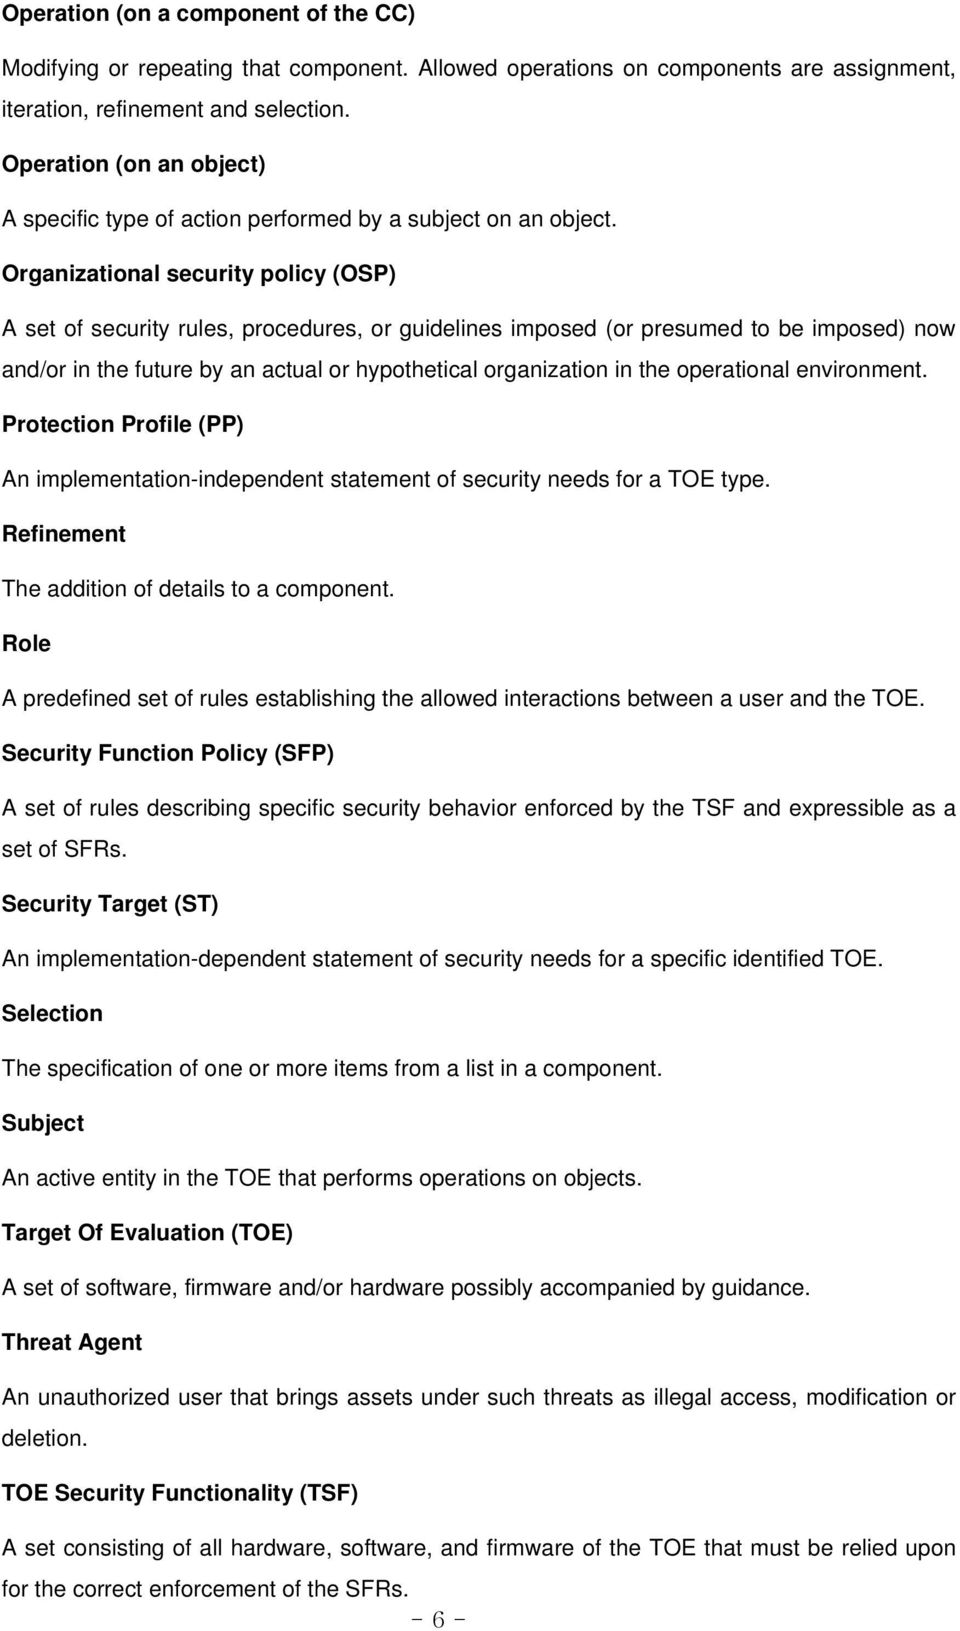 Organizational security policy (OSP) A set of security rules, procedures, or guidelines imposed (or presumed to be imposed) now and/or in the future by an actual or hypothetical organization in the